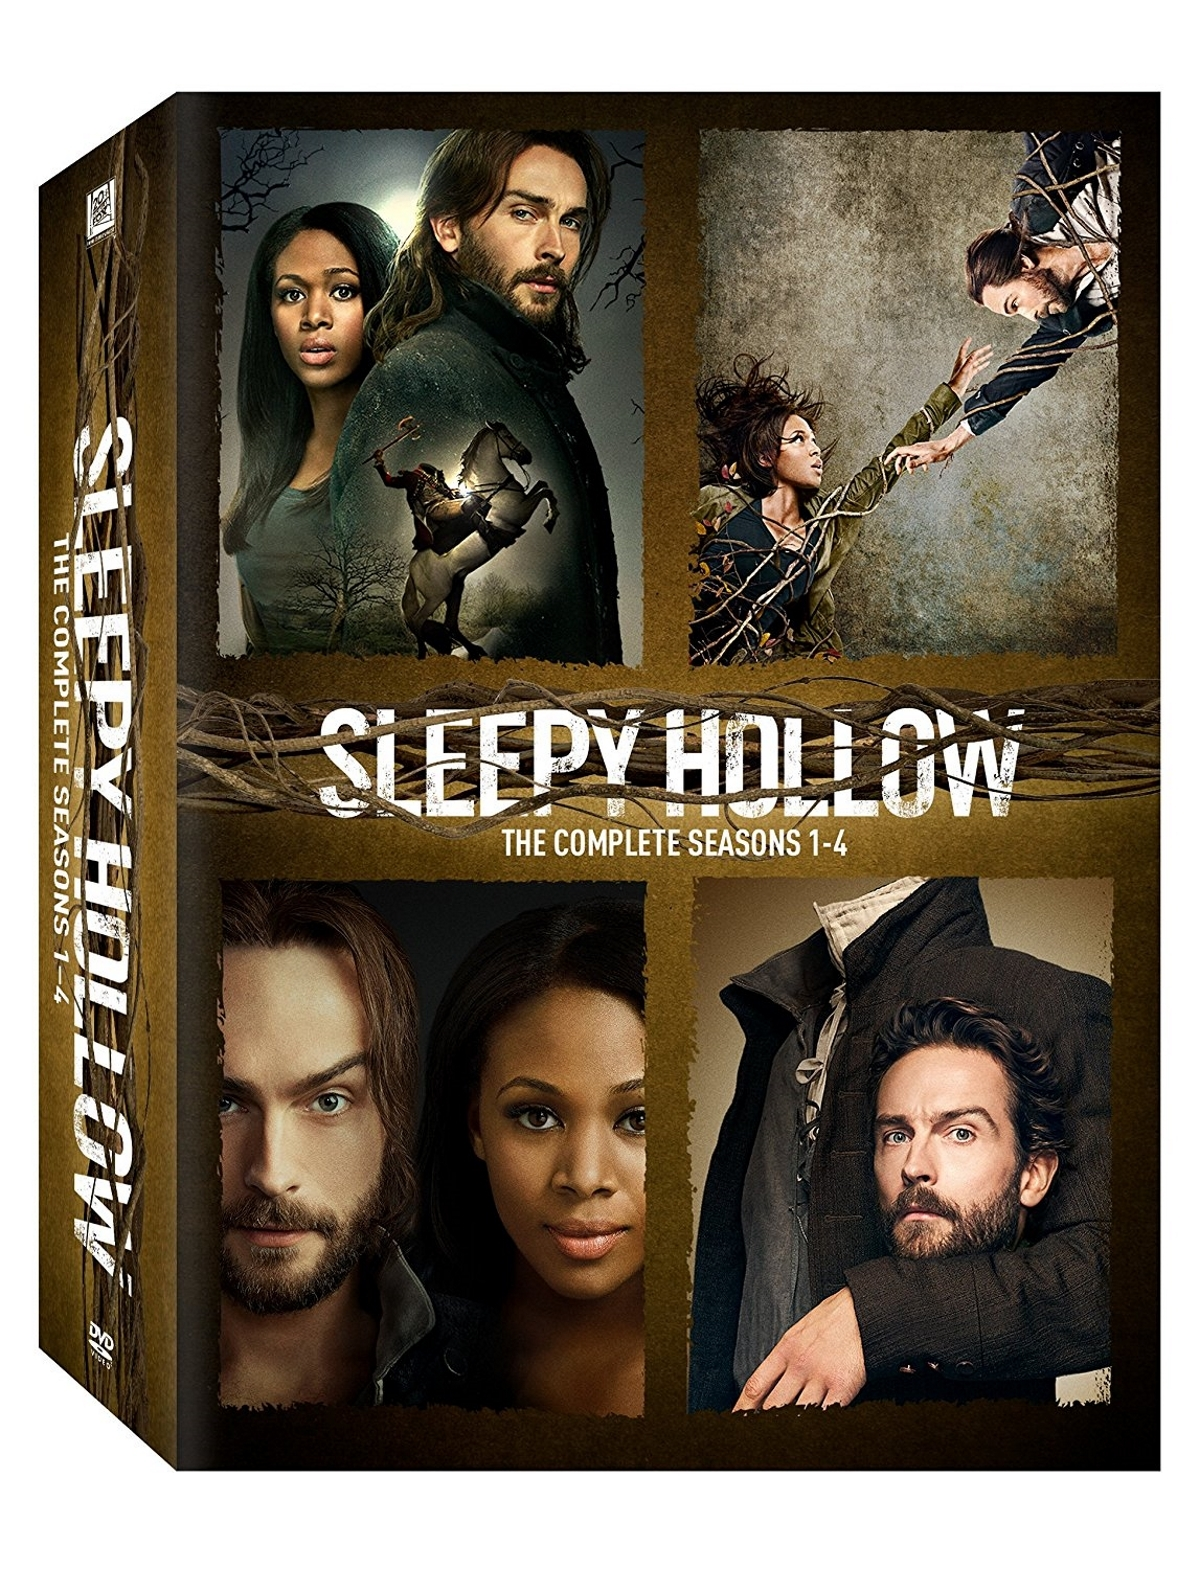 Sleepy Hollow The Complete Series Seasons 1-4 (DVD 2017 18-Disc BoxSet) 1 2 3 4